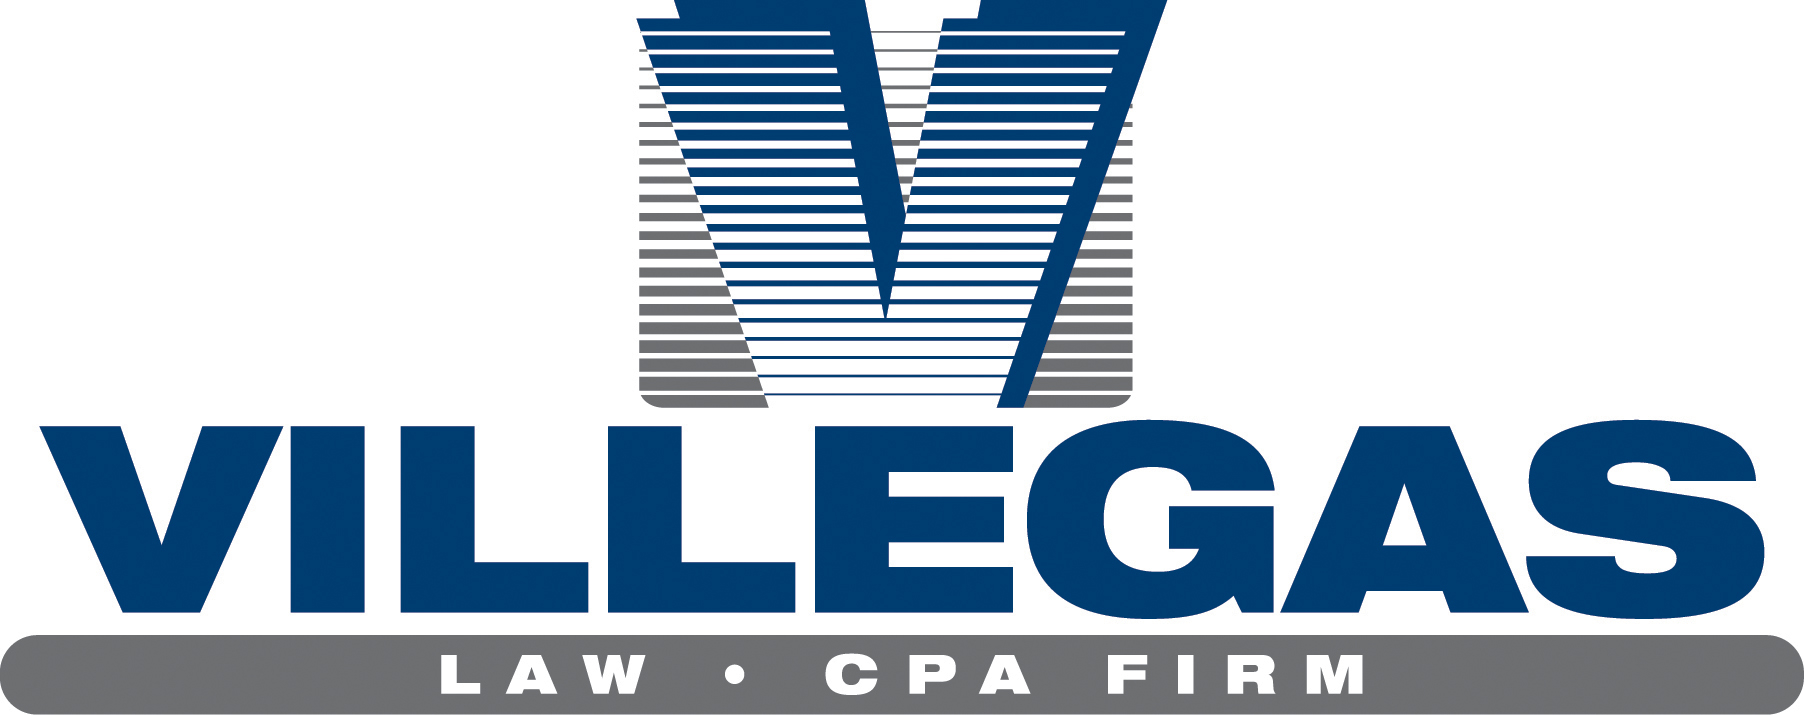 Villegas Law Firm - ad image